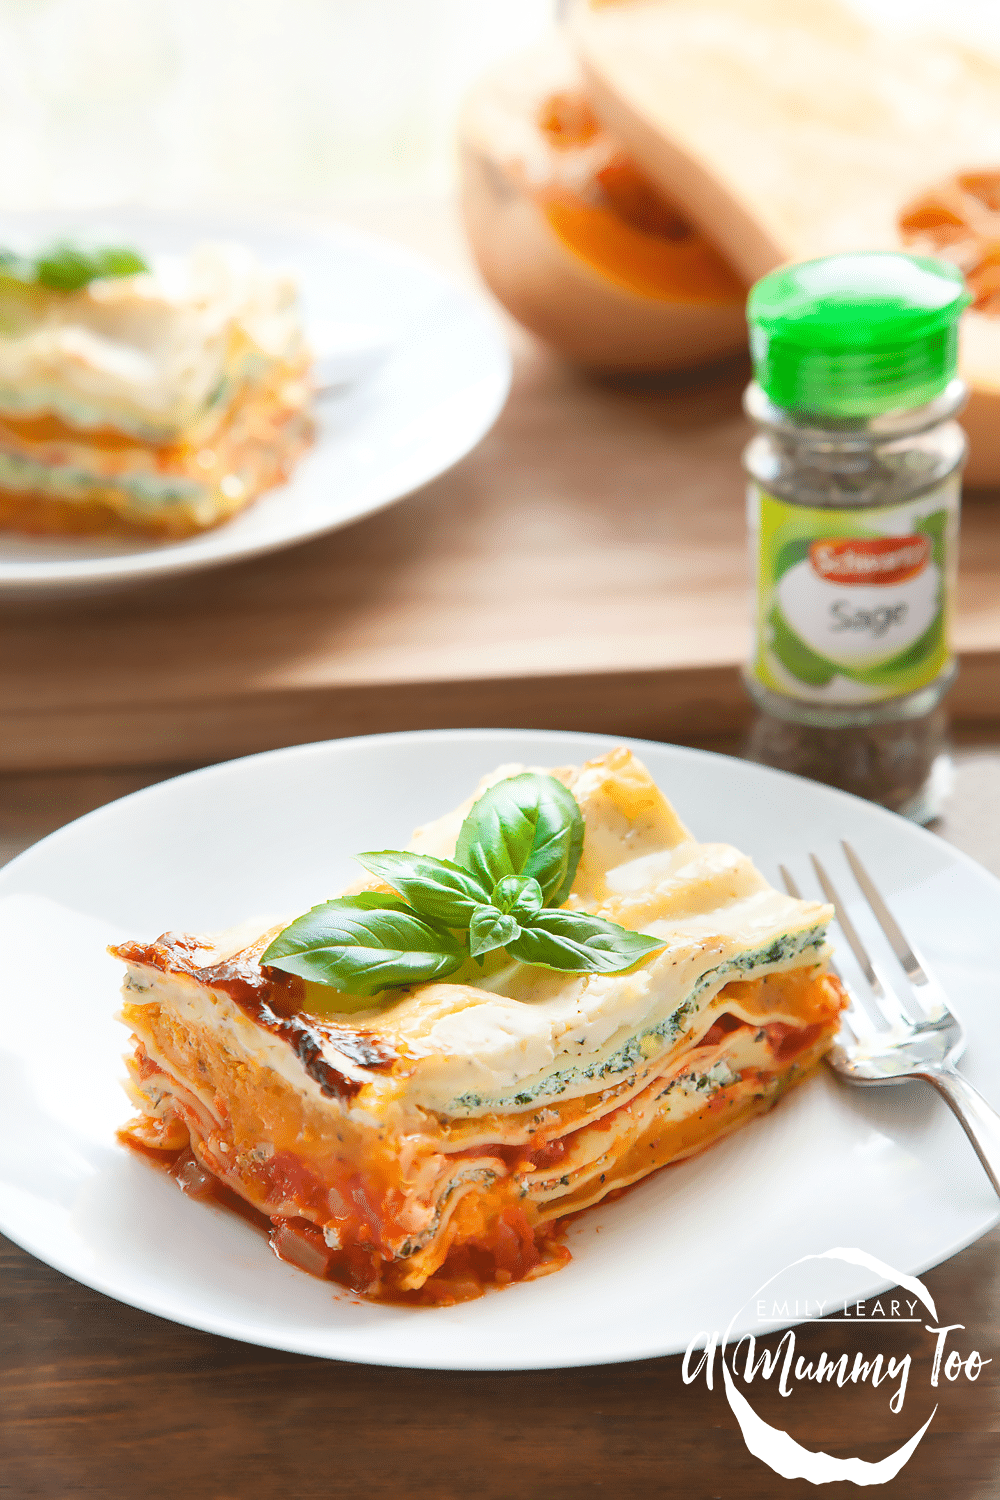 Butternut squash, spinach and ricotta lasagne - a hearty take on butternut squash soup